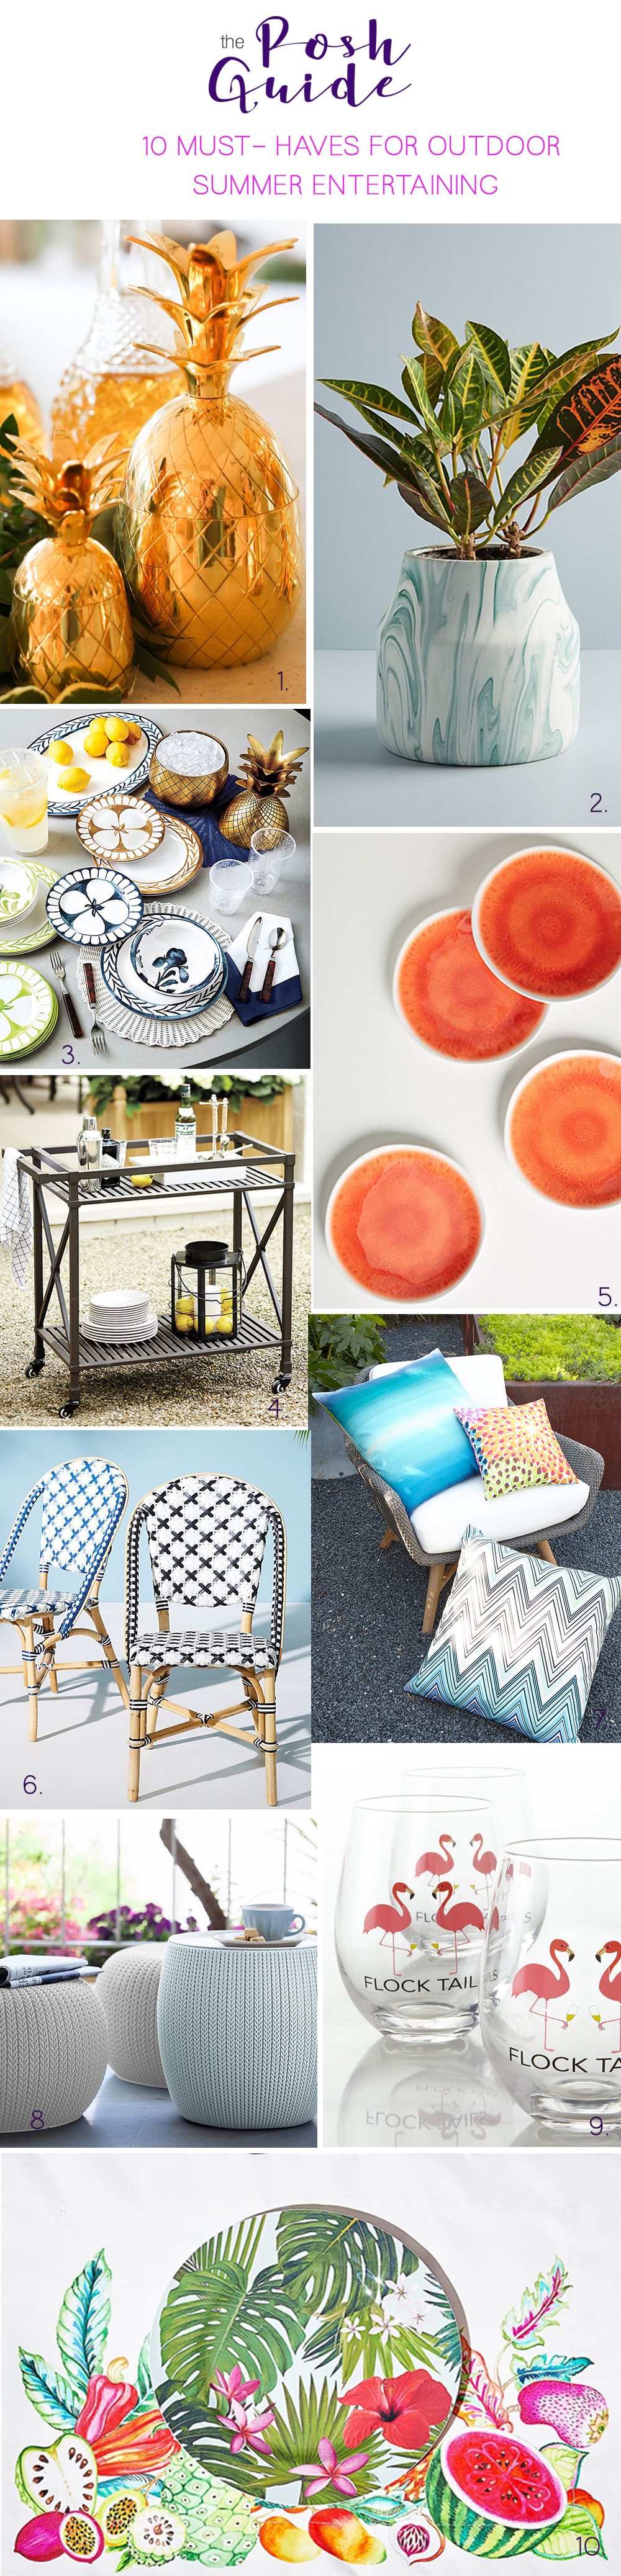 10 Must-Haves for Summer Outdoor Entertaining